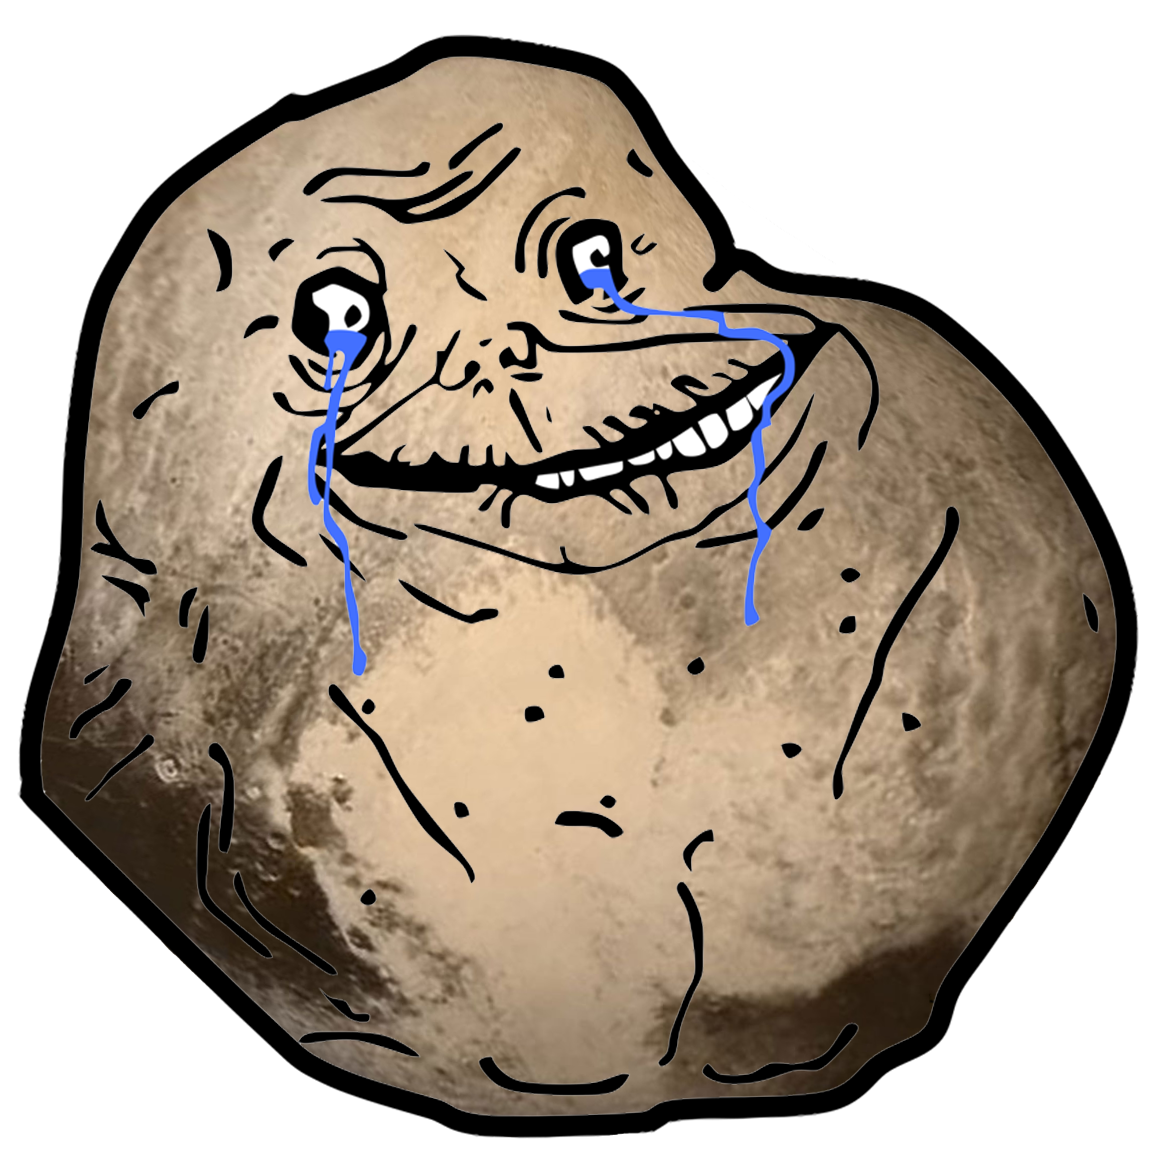 Forever Alone Pluto - Forever Alone Clipart